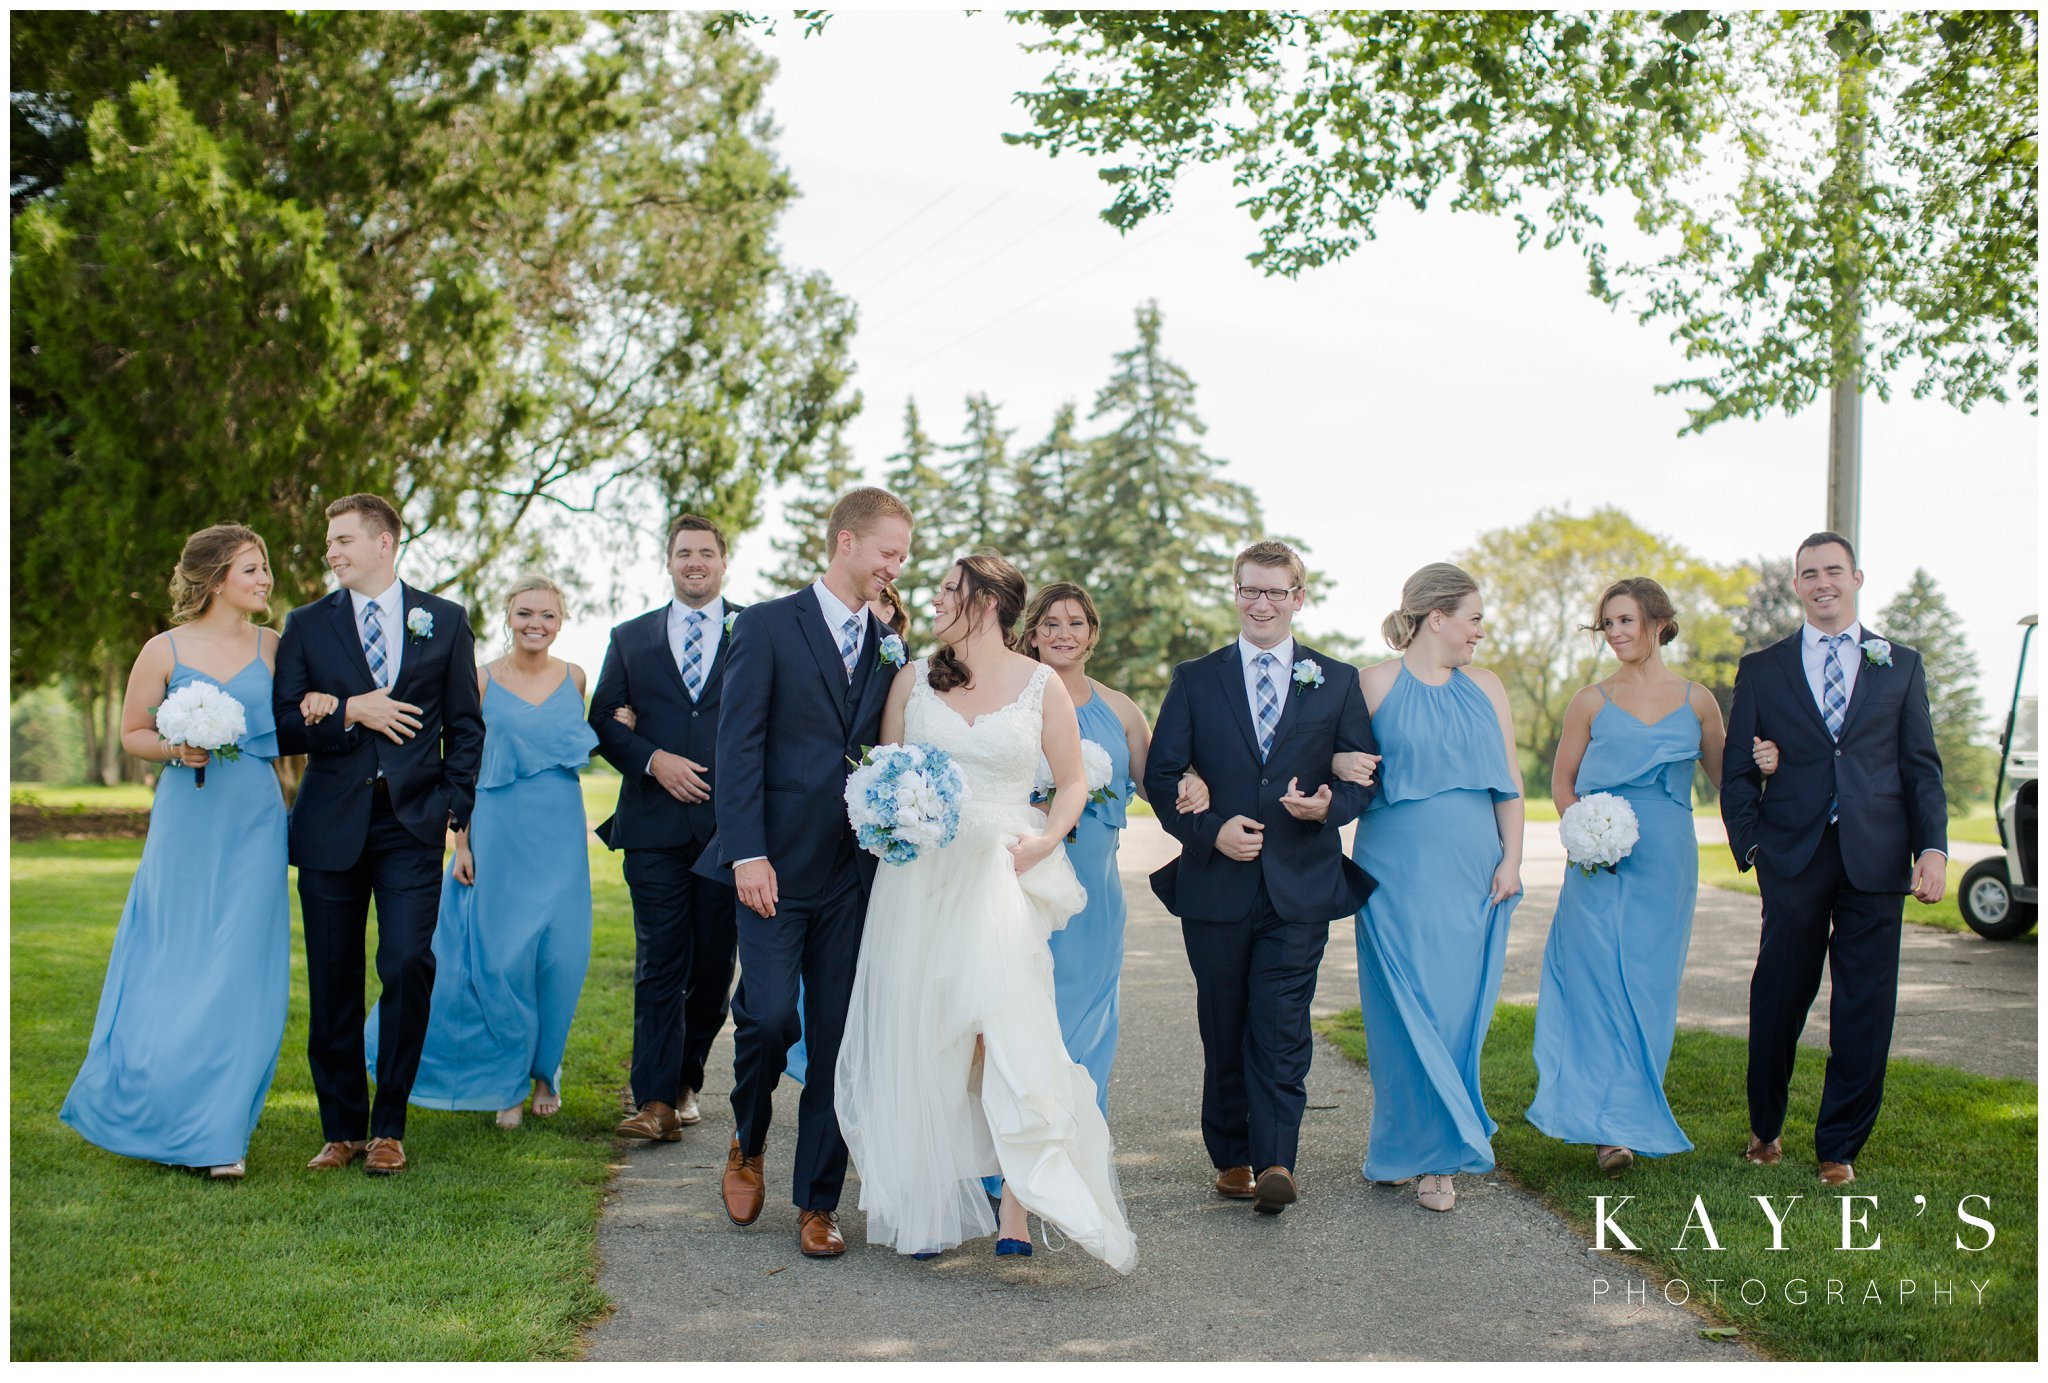 bridal party walking together on golf course and laughing during wedding portraits